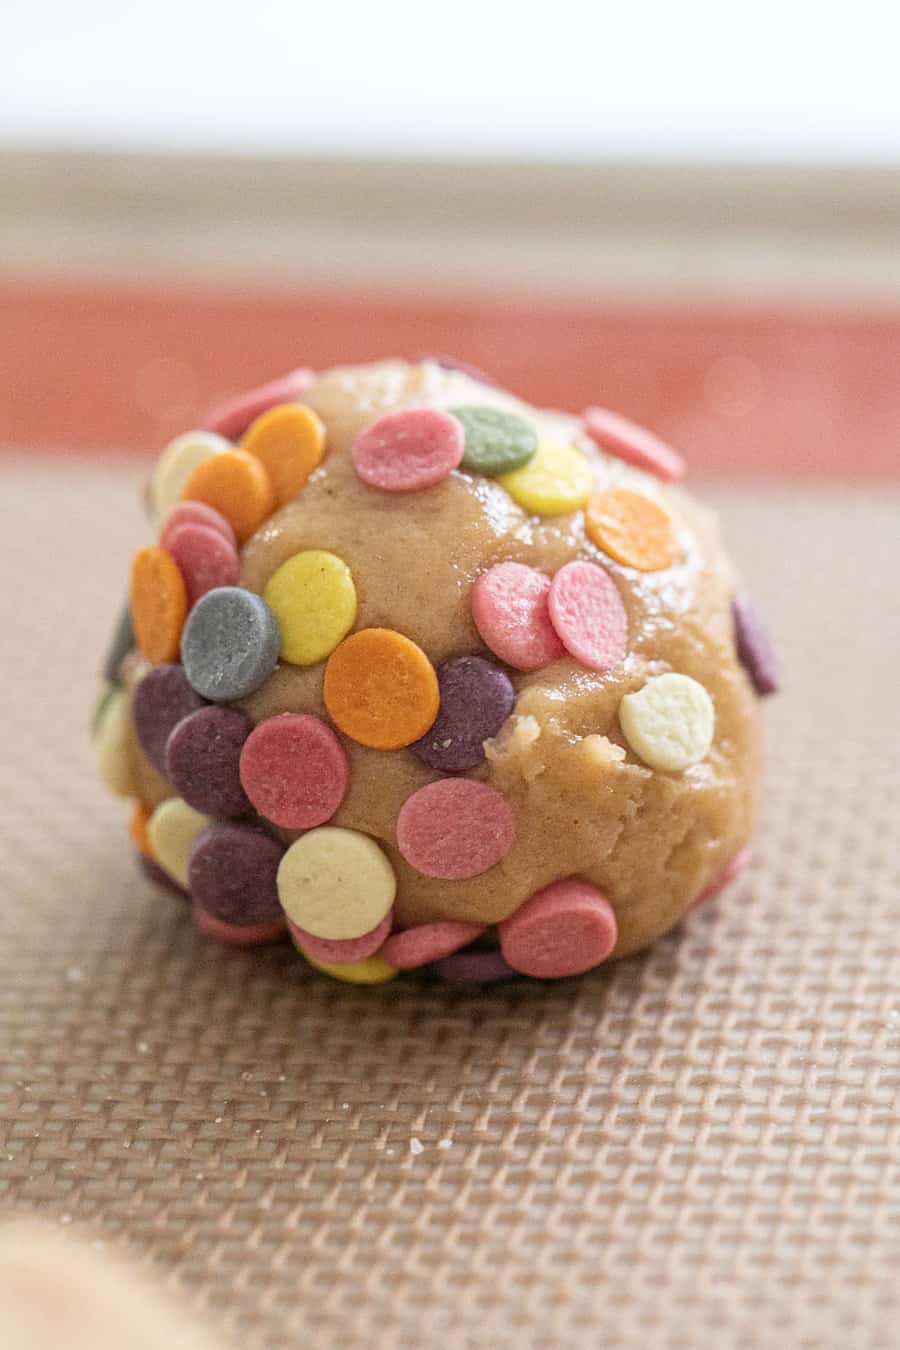 Cookie dough ball with colorful sprinkle